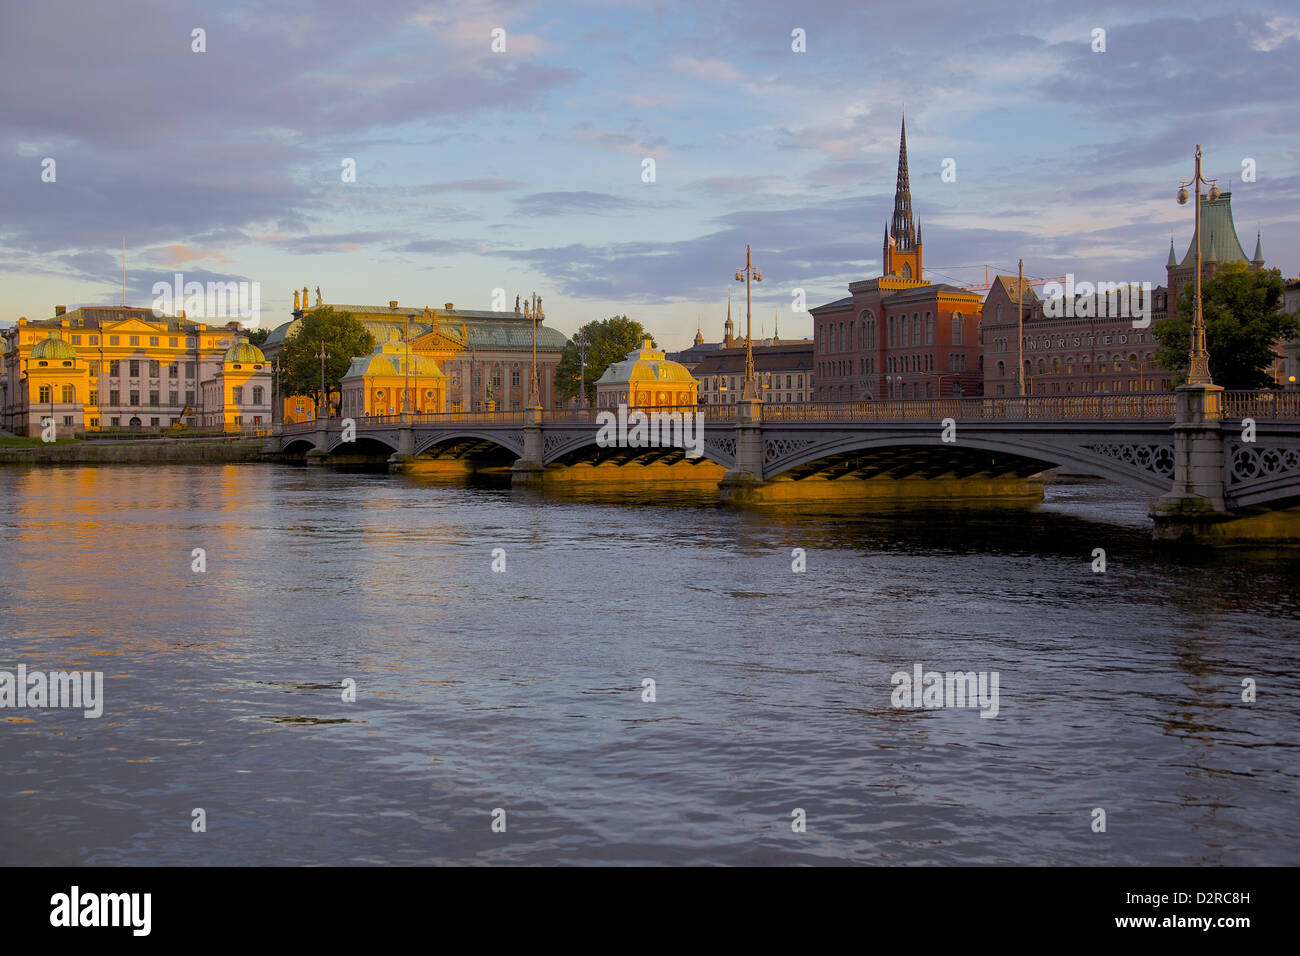 Gamla Stan and Riddarholmen with spire of Riddarholmskyrkan (Riddarholmen Church) on the skyline at sunset, Stockholm, - Stock Image